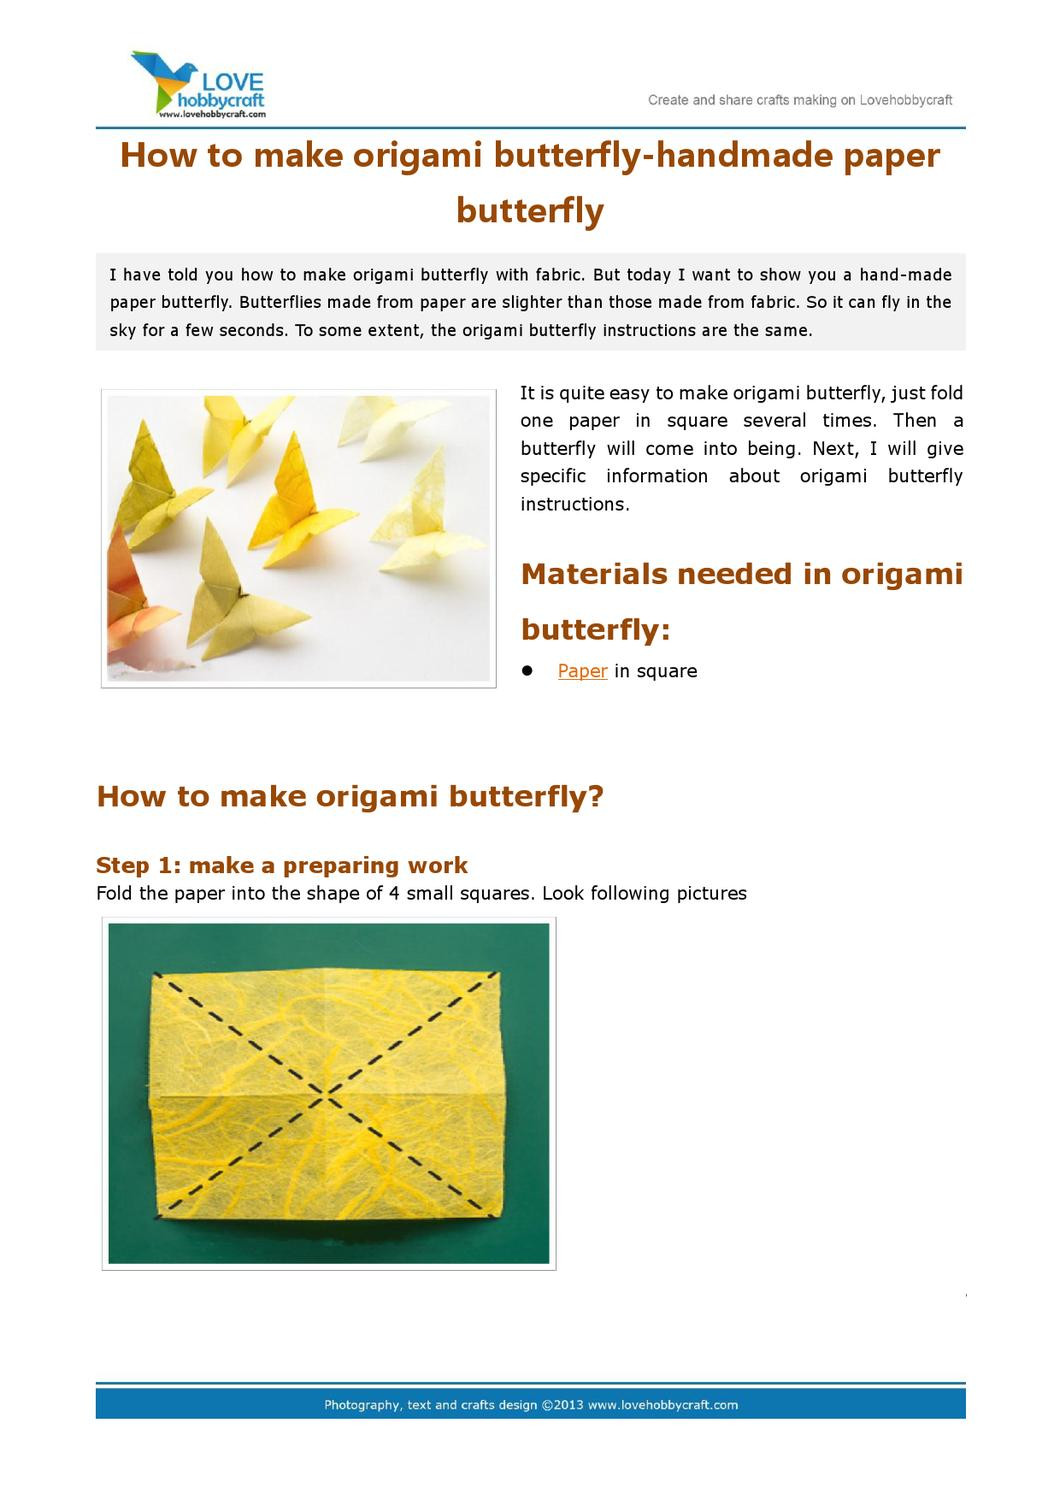 How to DIY Origami Butterfly | Seni origami, Tutorial origami, Origami | 1500x1060